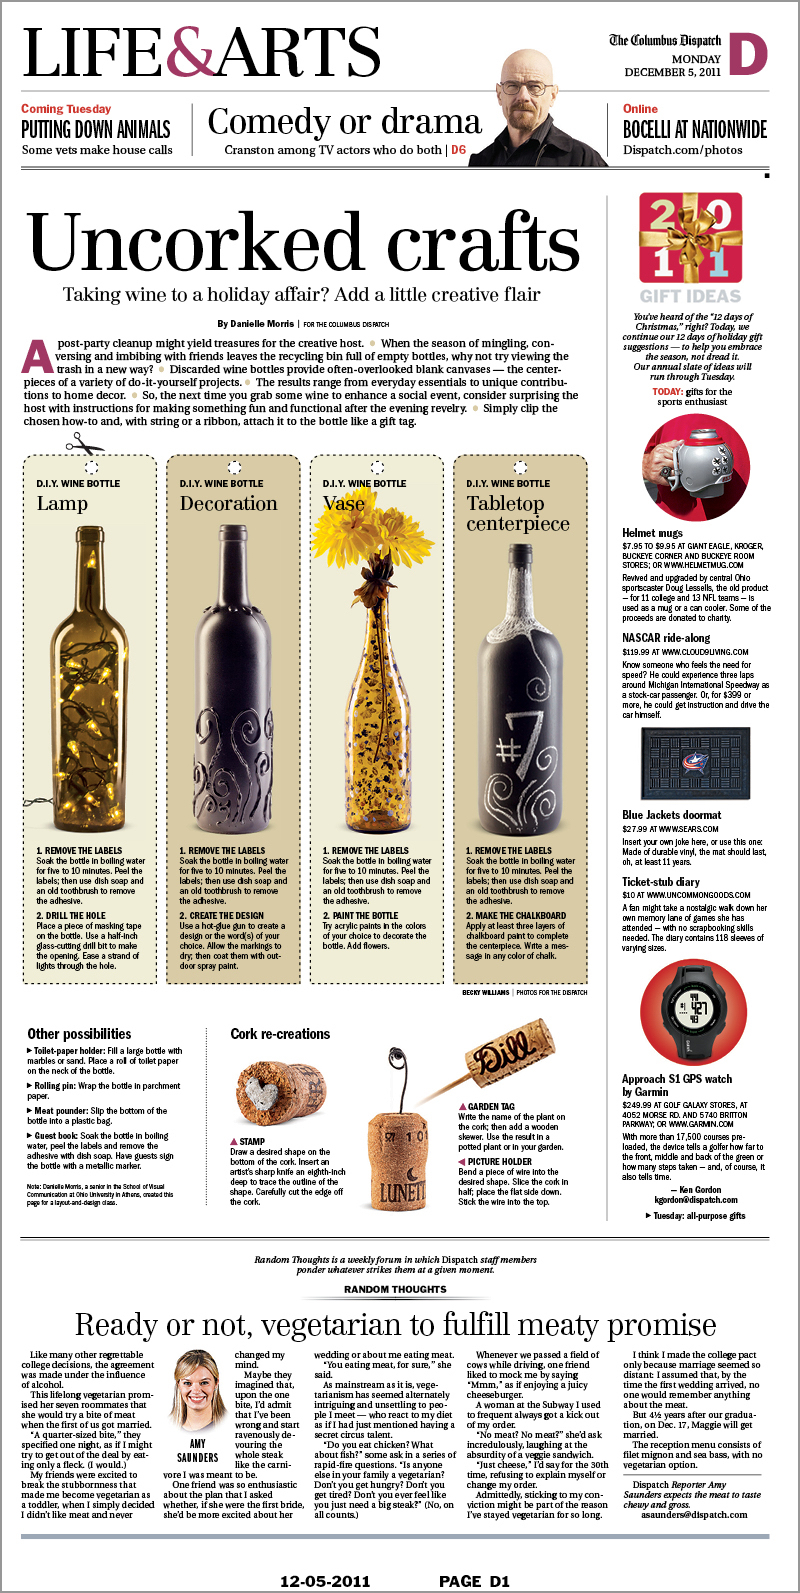 Feature story design created for class that ended up being published in the Columbus Dispatch. I created all of the wine bottle crafts and used them as gifts for friends that Christmas.